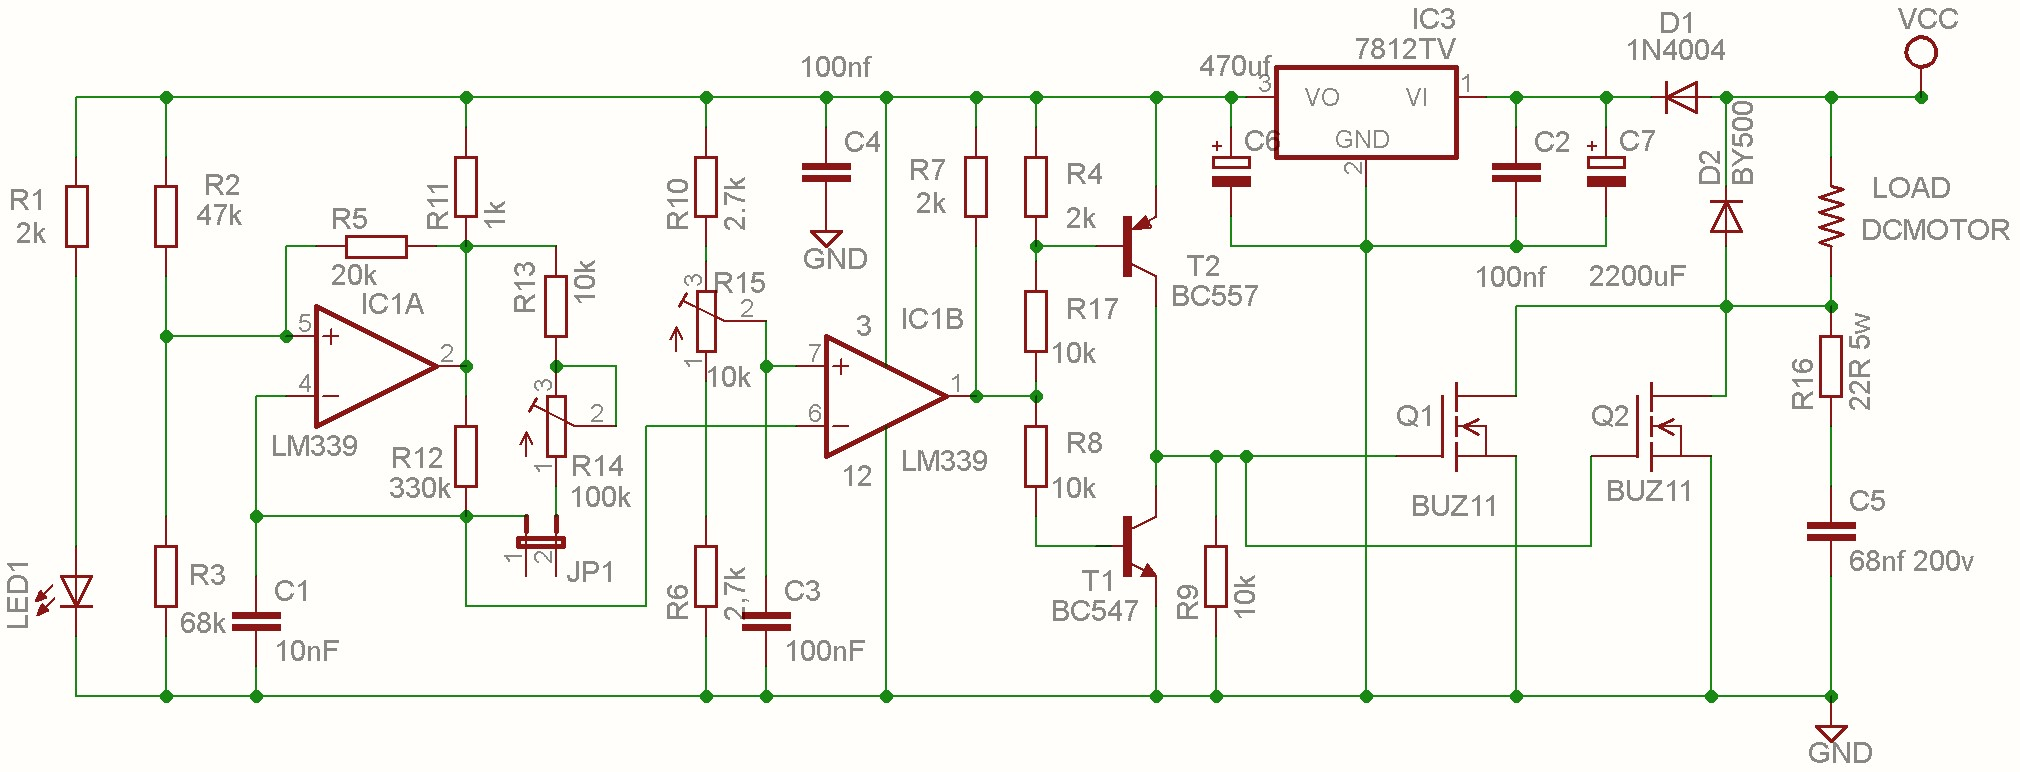 Dc Motor Speed Controller Pwm 0 100 Overcurrent Protection Second E Bike Circuit Diagram You